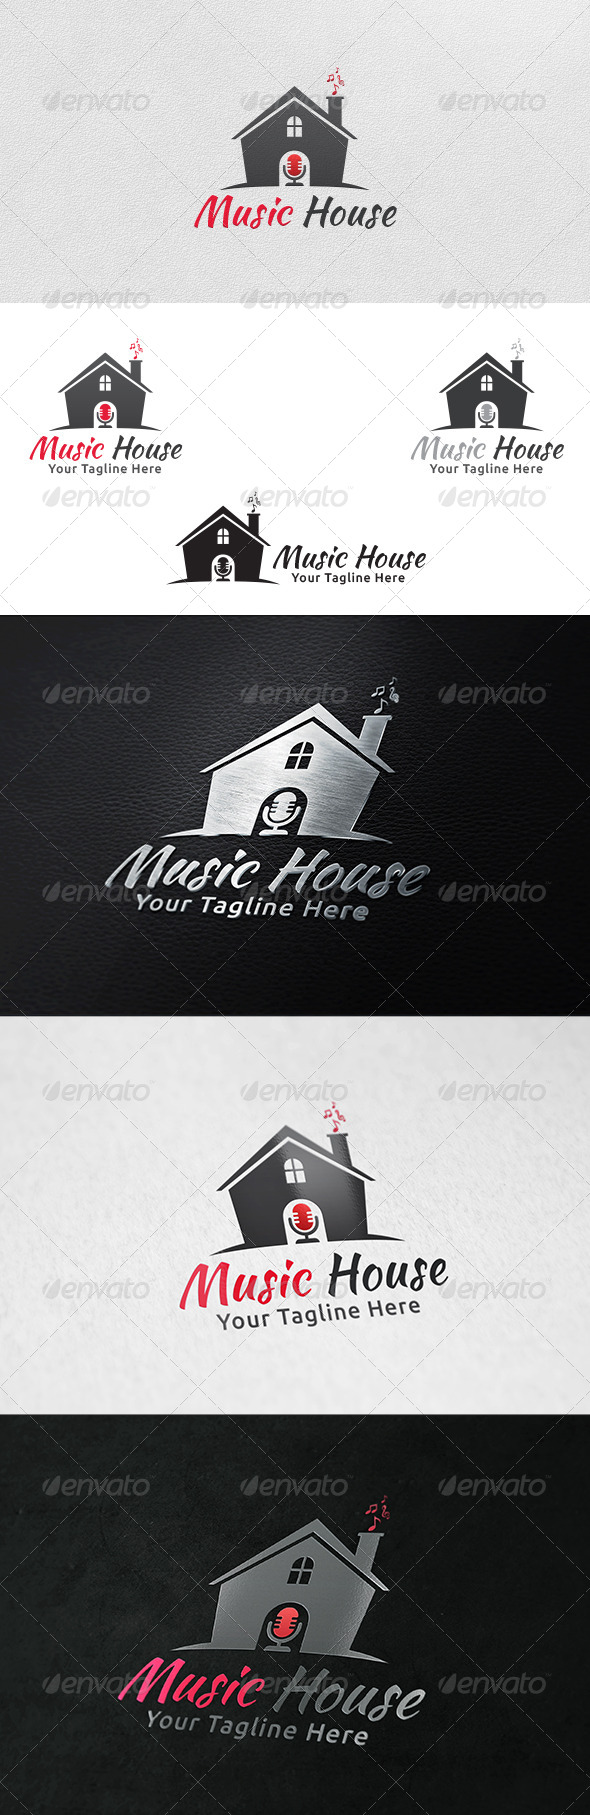 GraphicRiver Music House Logo Template 6172520